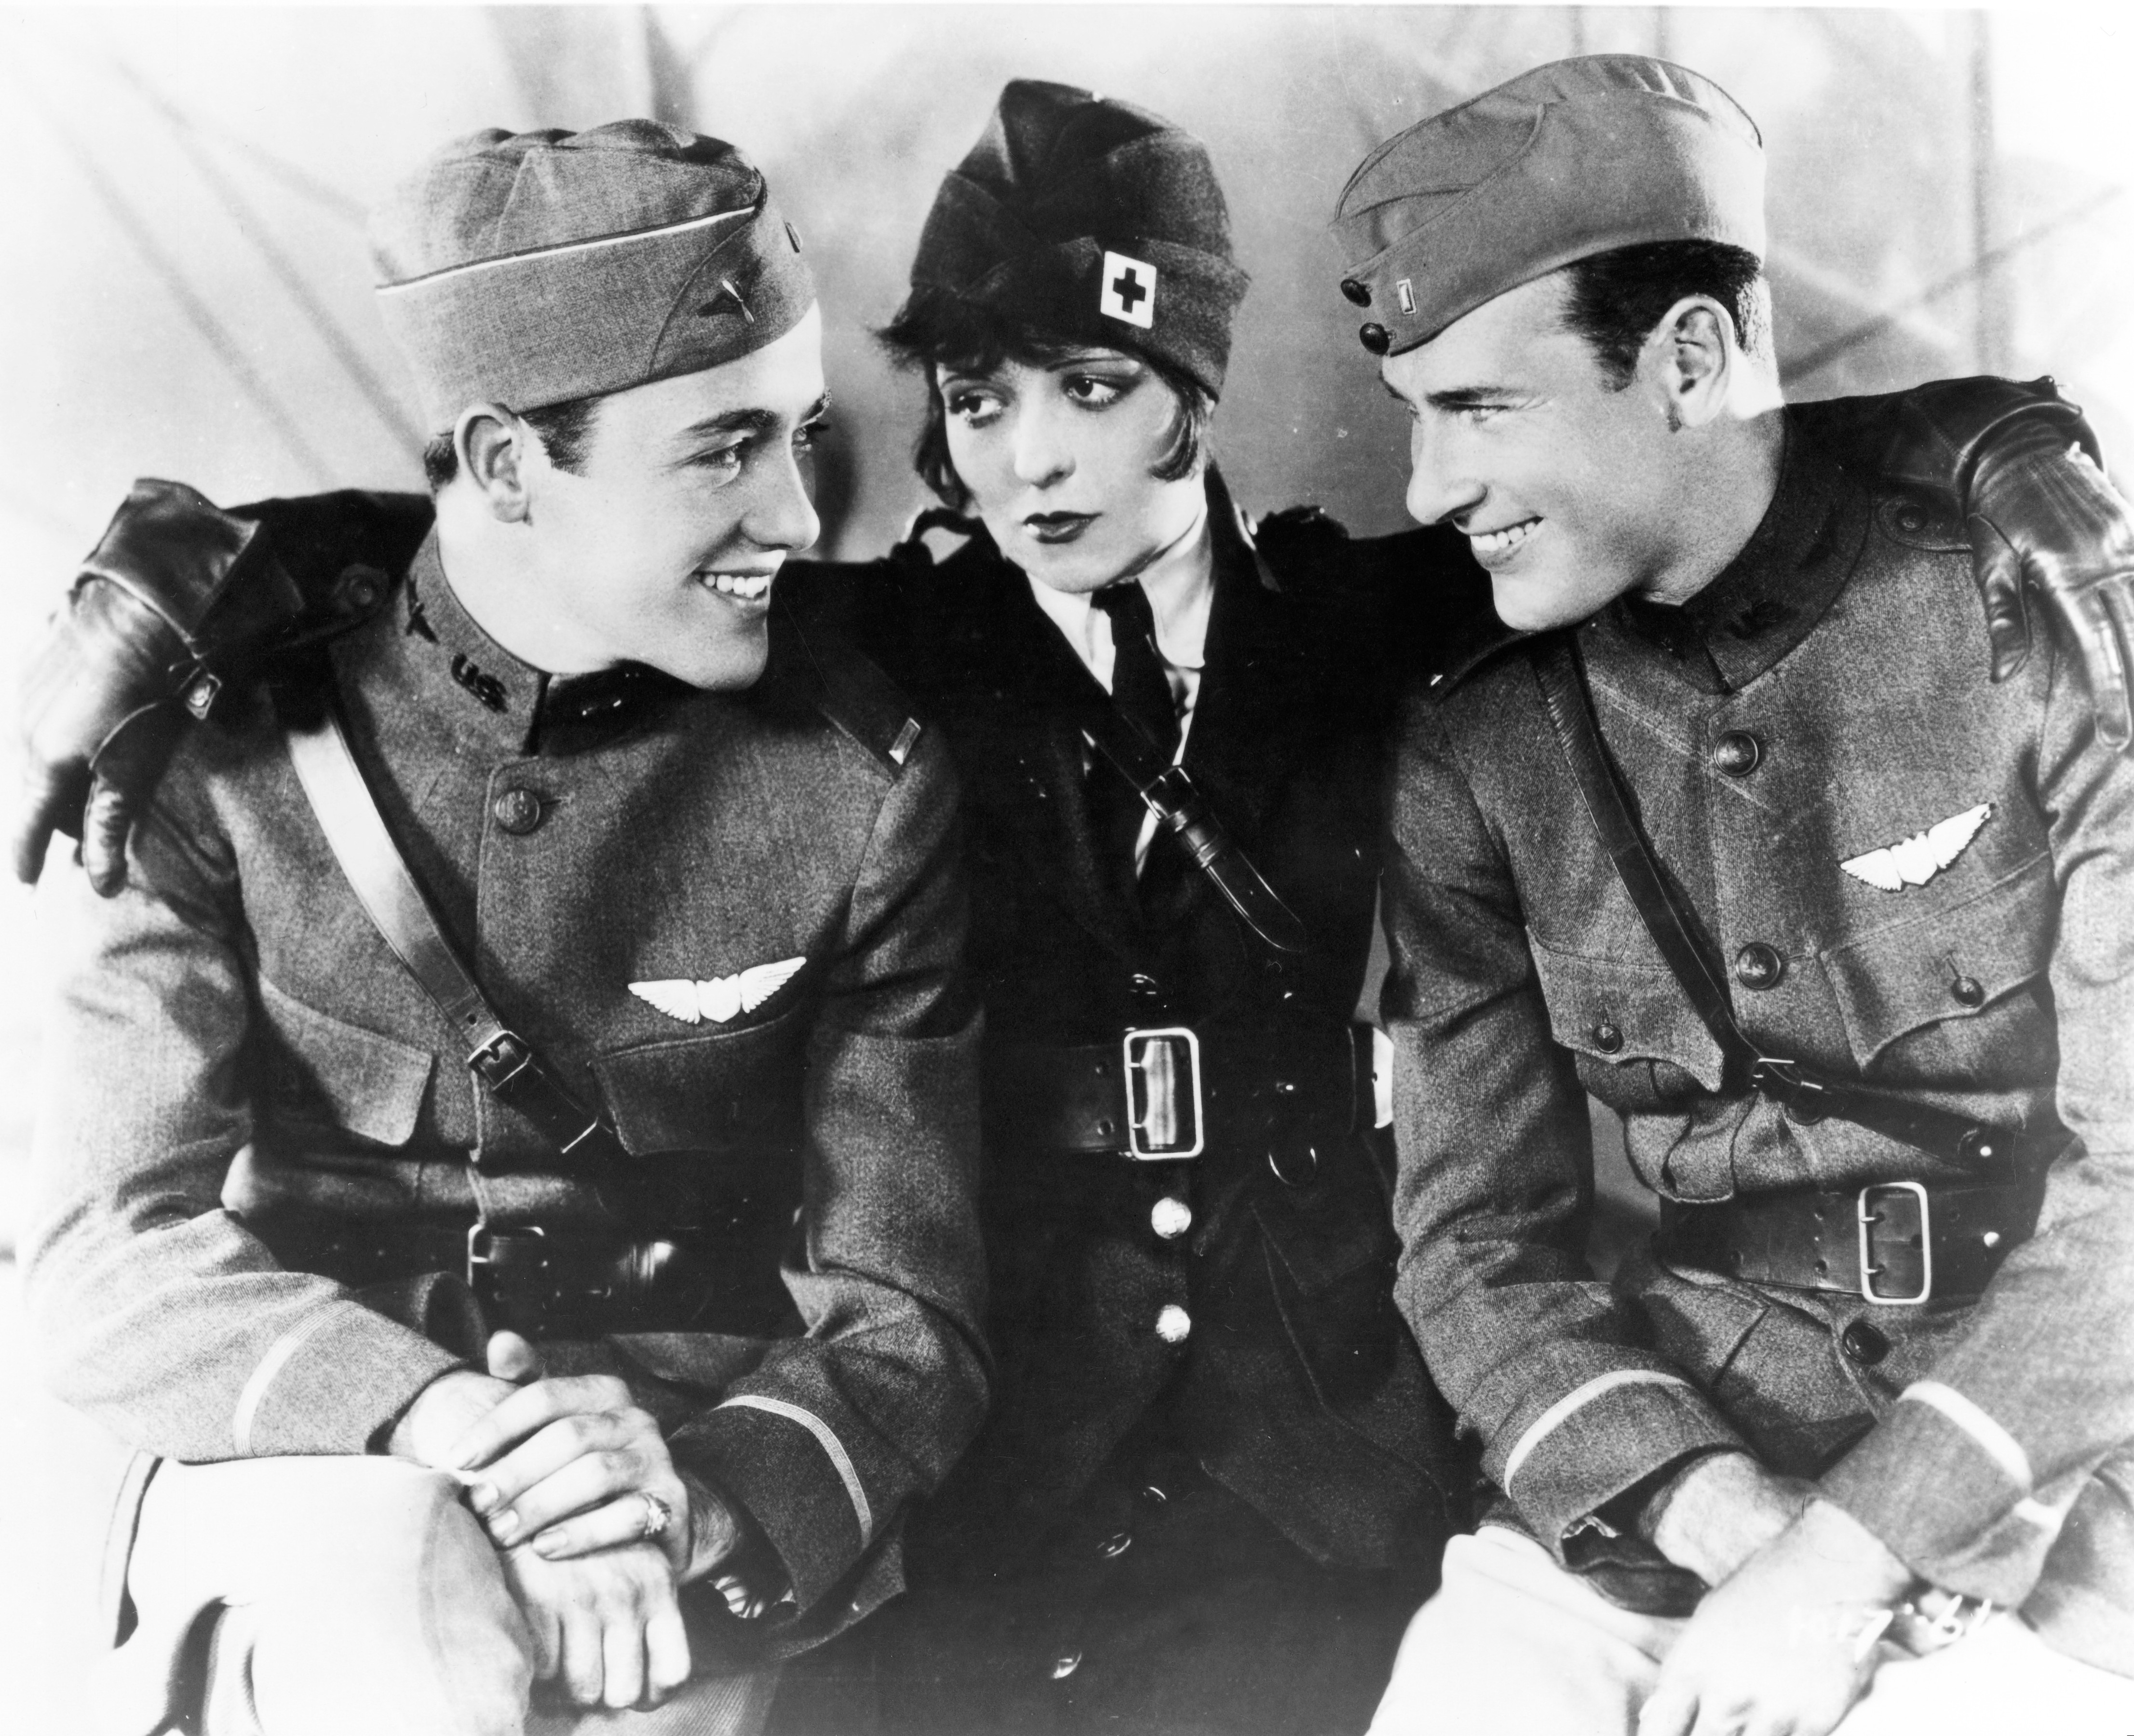 Shot in and around San Antonio, Texas, Wings was the first film to win an Academy Award for Best Picture in 1927.